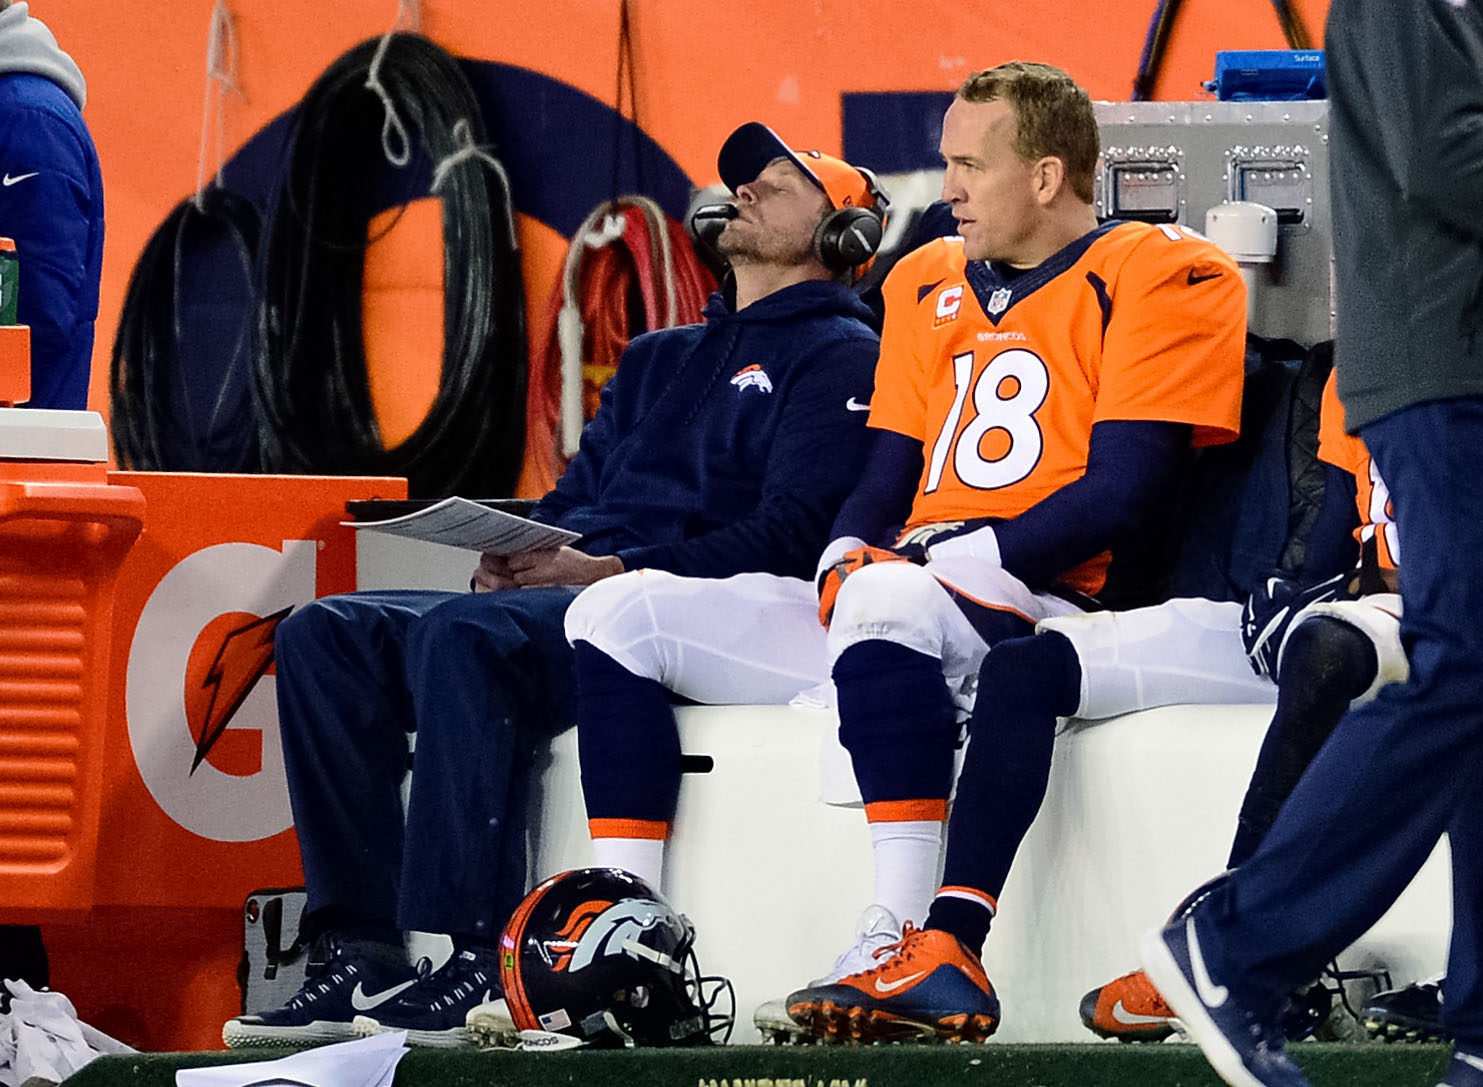 Peyton Manning and offensive coordinator Adam Gase looked lost against the Colts.